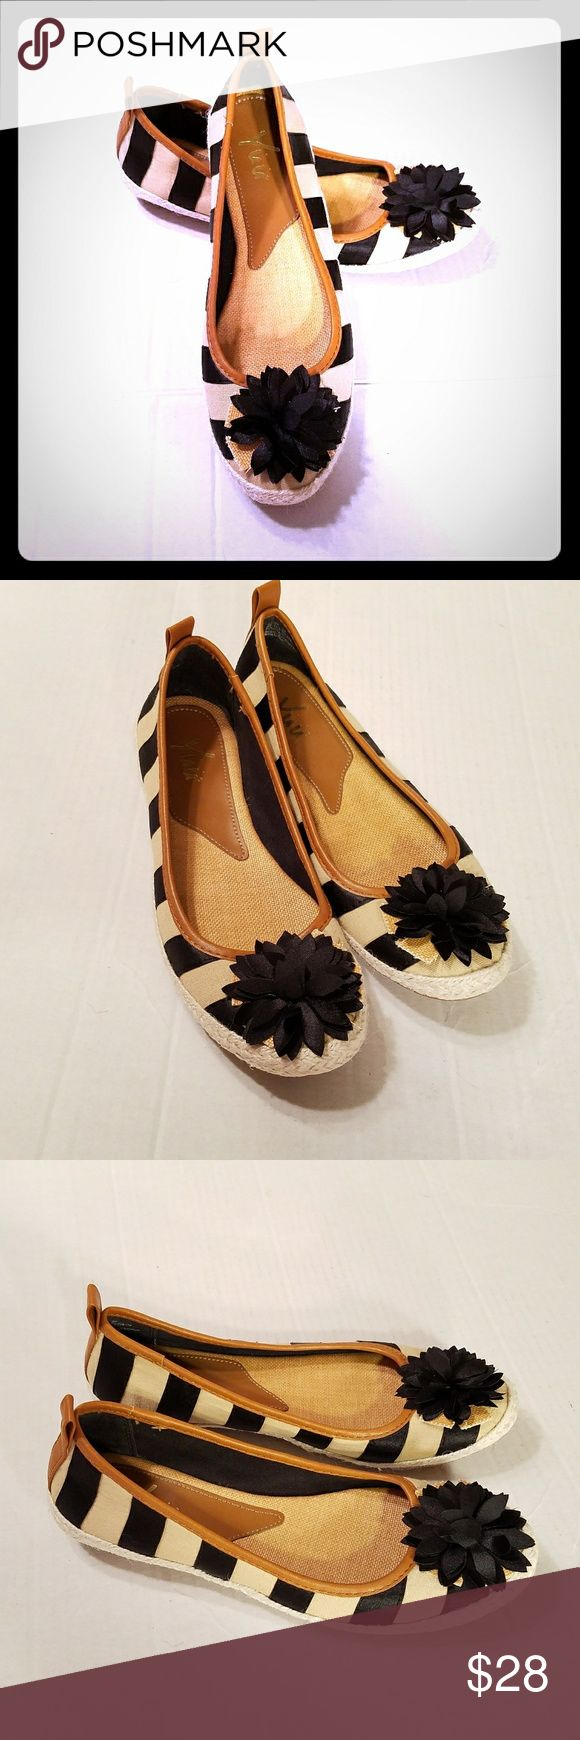 Sz 8M Yuu Garet Striped Ballet Flats Yuu Women's Shoes Garet Striped Ballet Flat Flower Black Tan Rope sz 8M  Size 8M  See pictures for more detail yuu Shoes Flats & Loafers